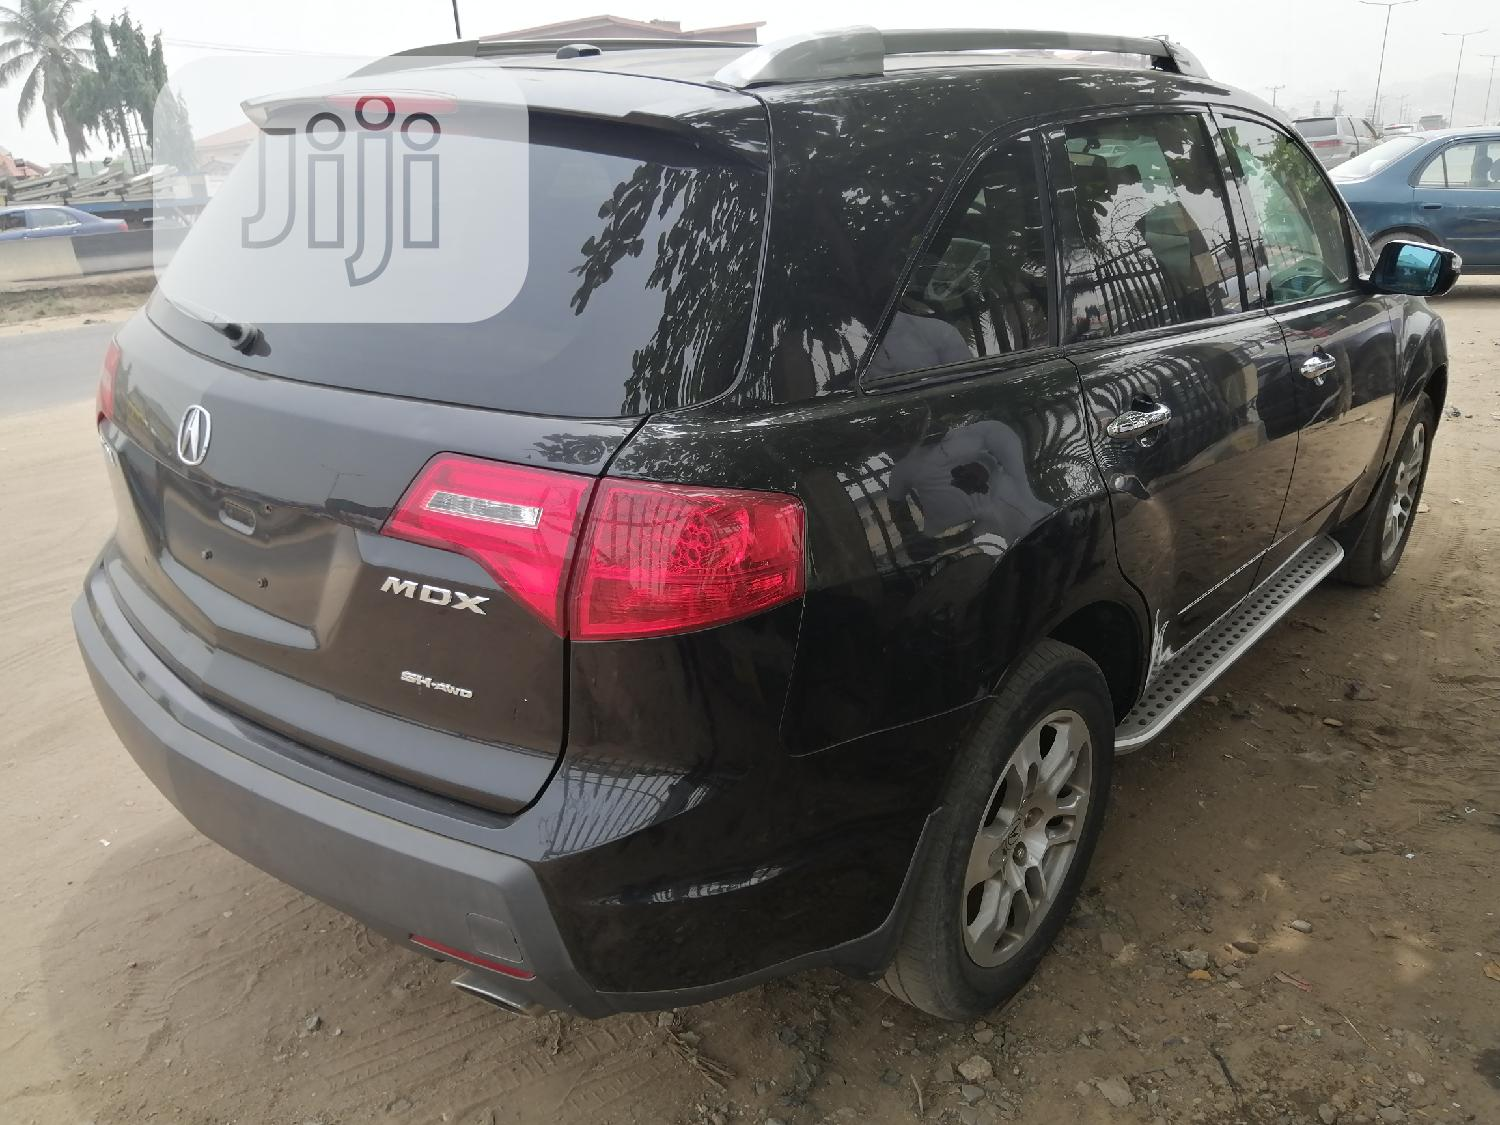 Acura MDX 2008 SUV 4dr AWD (3.7 6cyl 5A) Black   Cars for sale in Ikeja, Lagos State, Nigeria